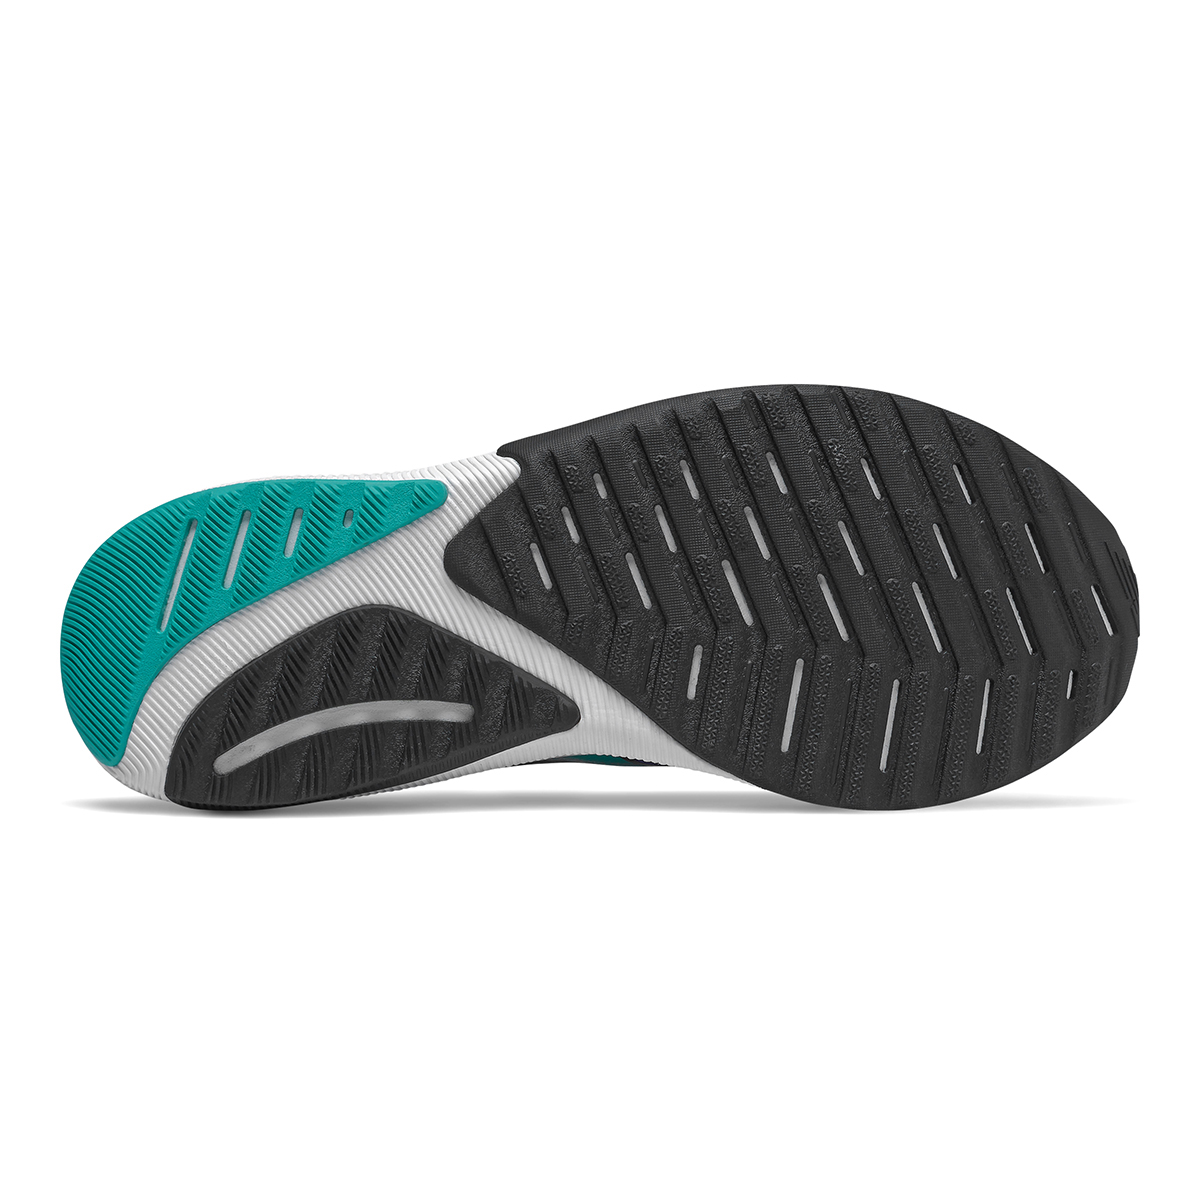 Men's New Balance Fuelcell Propel V2 Running Shoe, , large, image 4